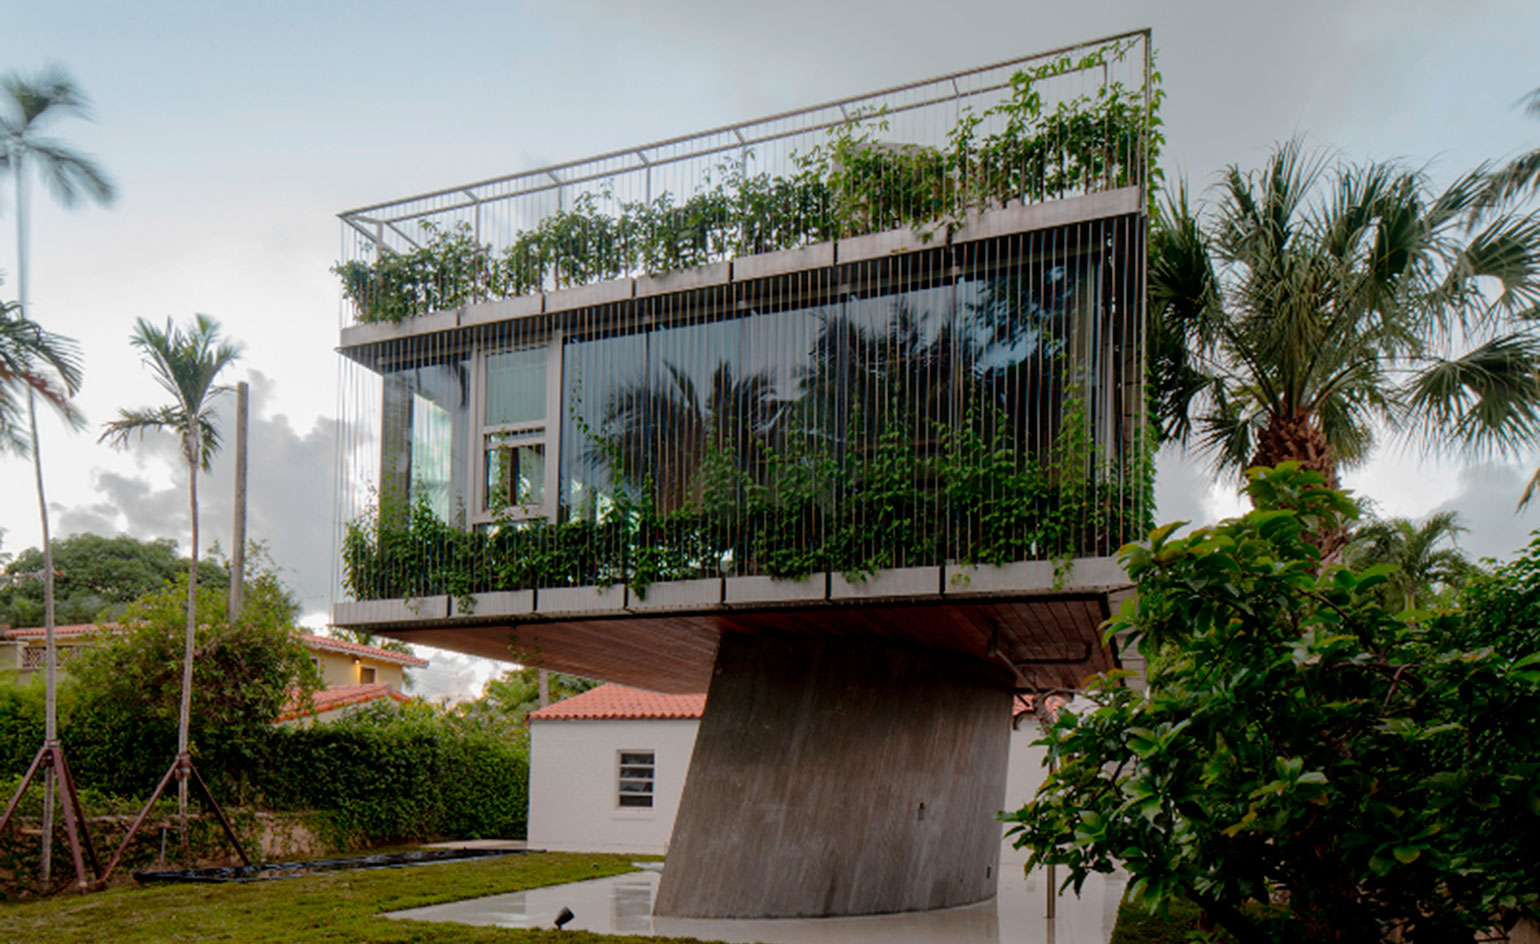 Container Haus New York Christian Wassmann 39s Latest Build In Miami Wallpaper